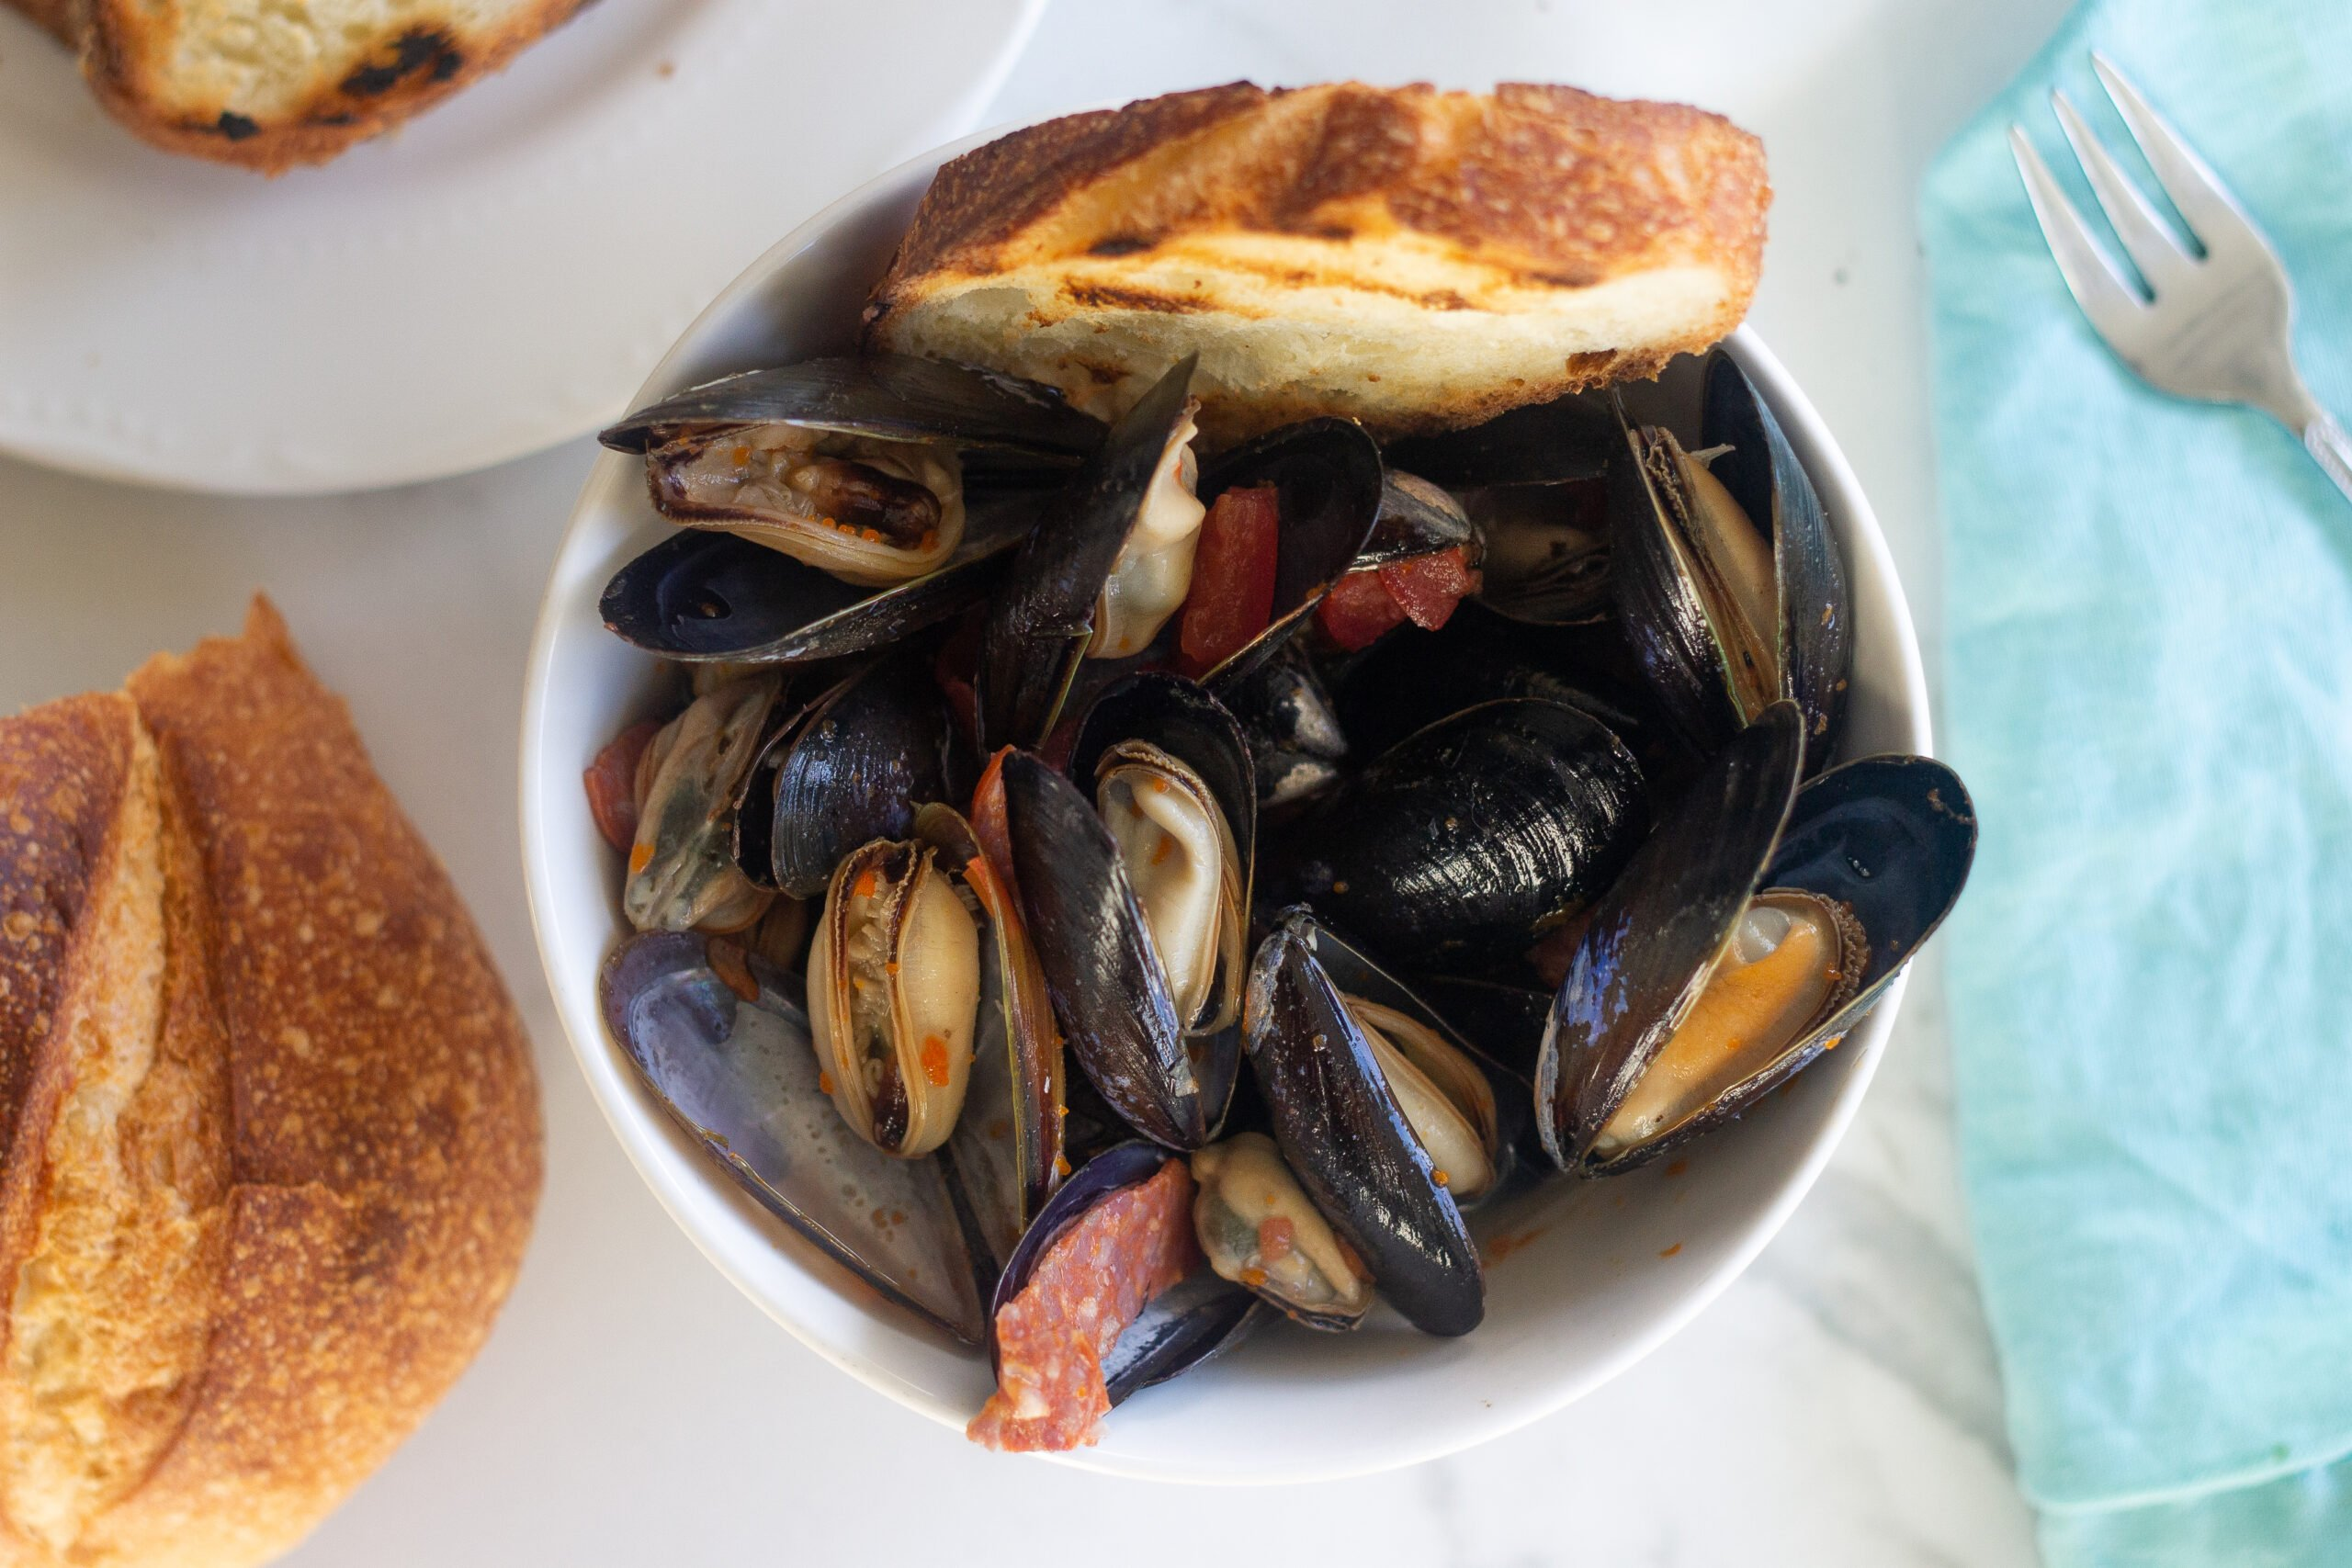 Steamed mussles in a bowl with crusty baguette.